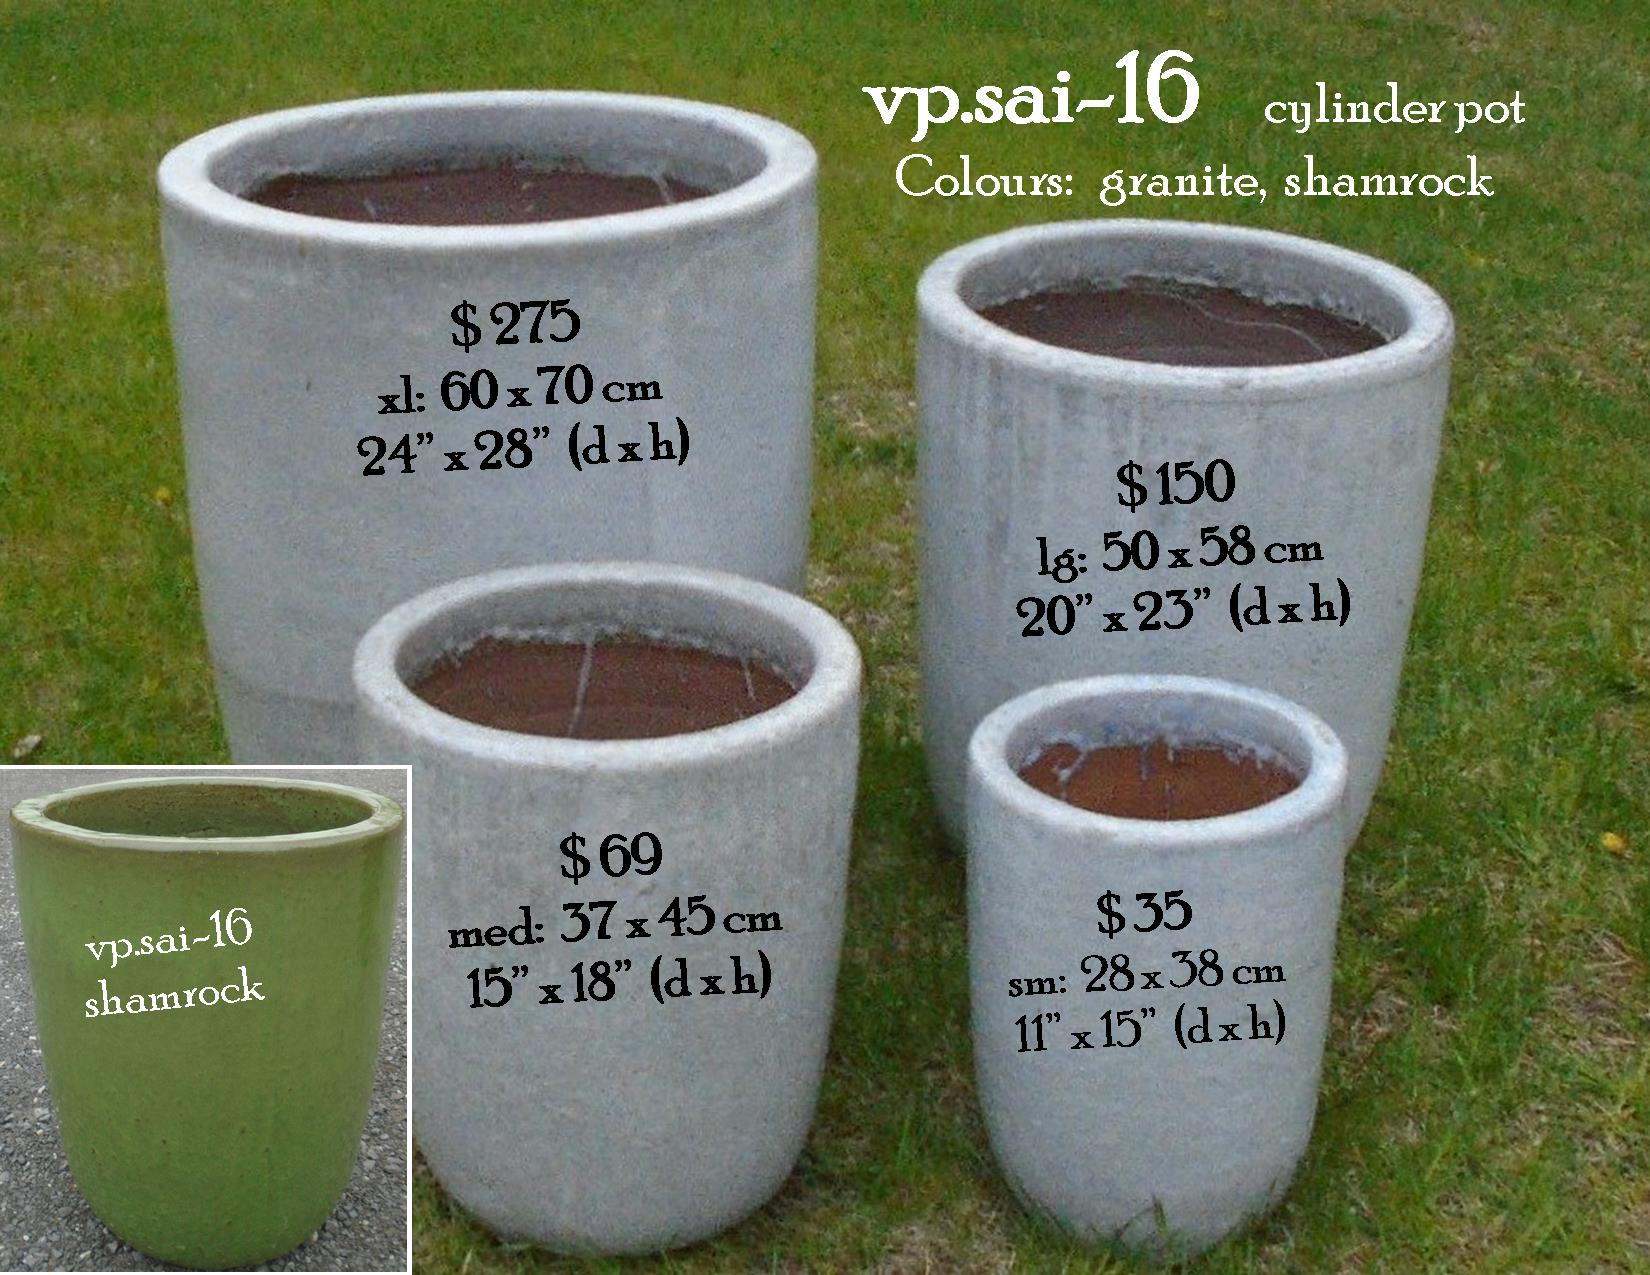 vp.sai-16    cylinder pot